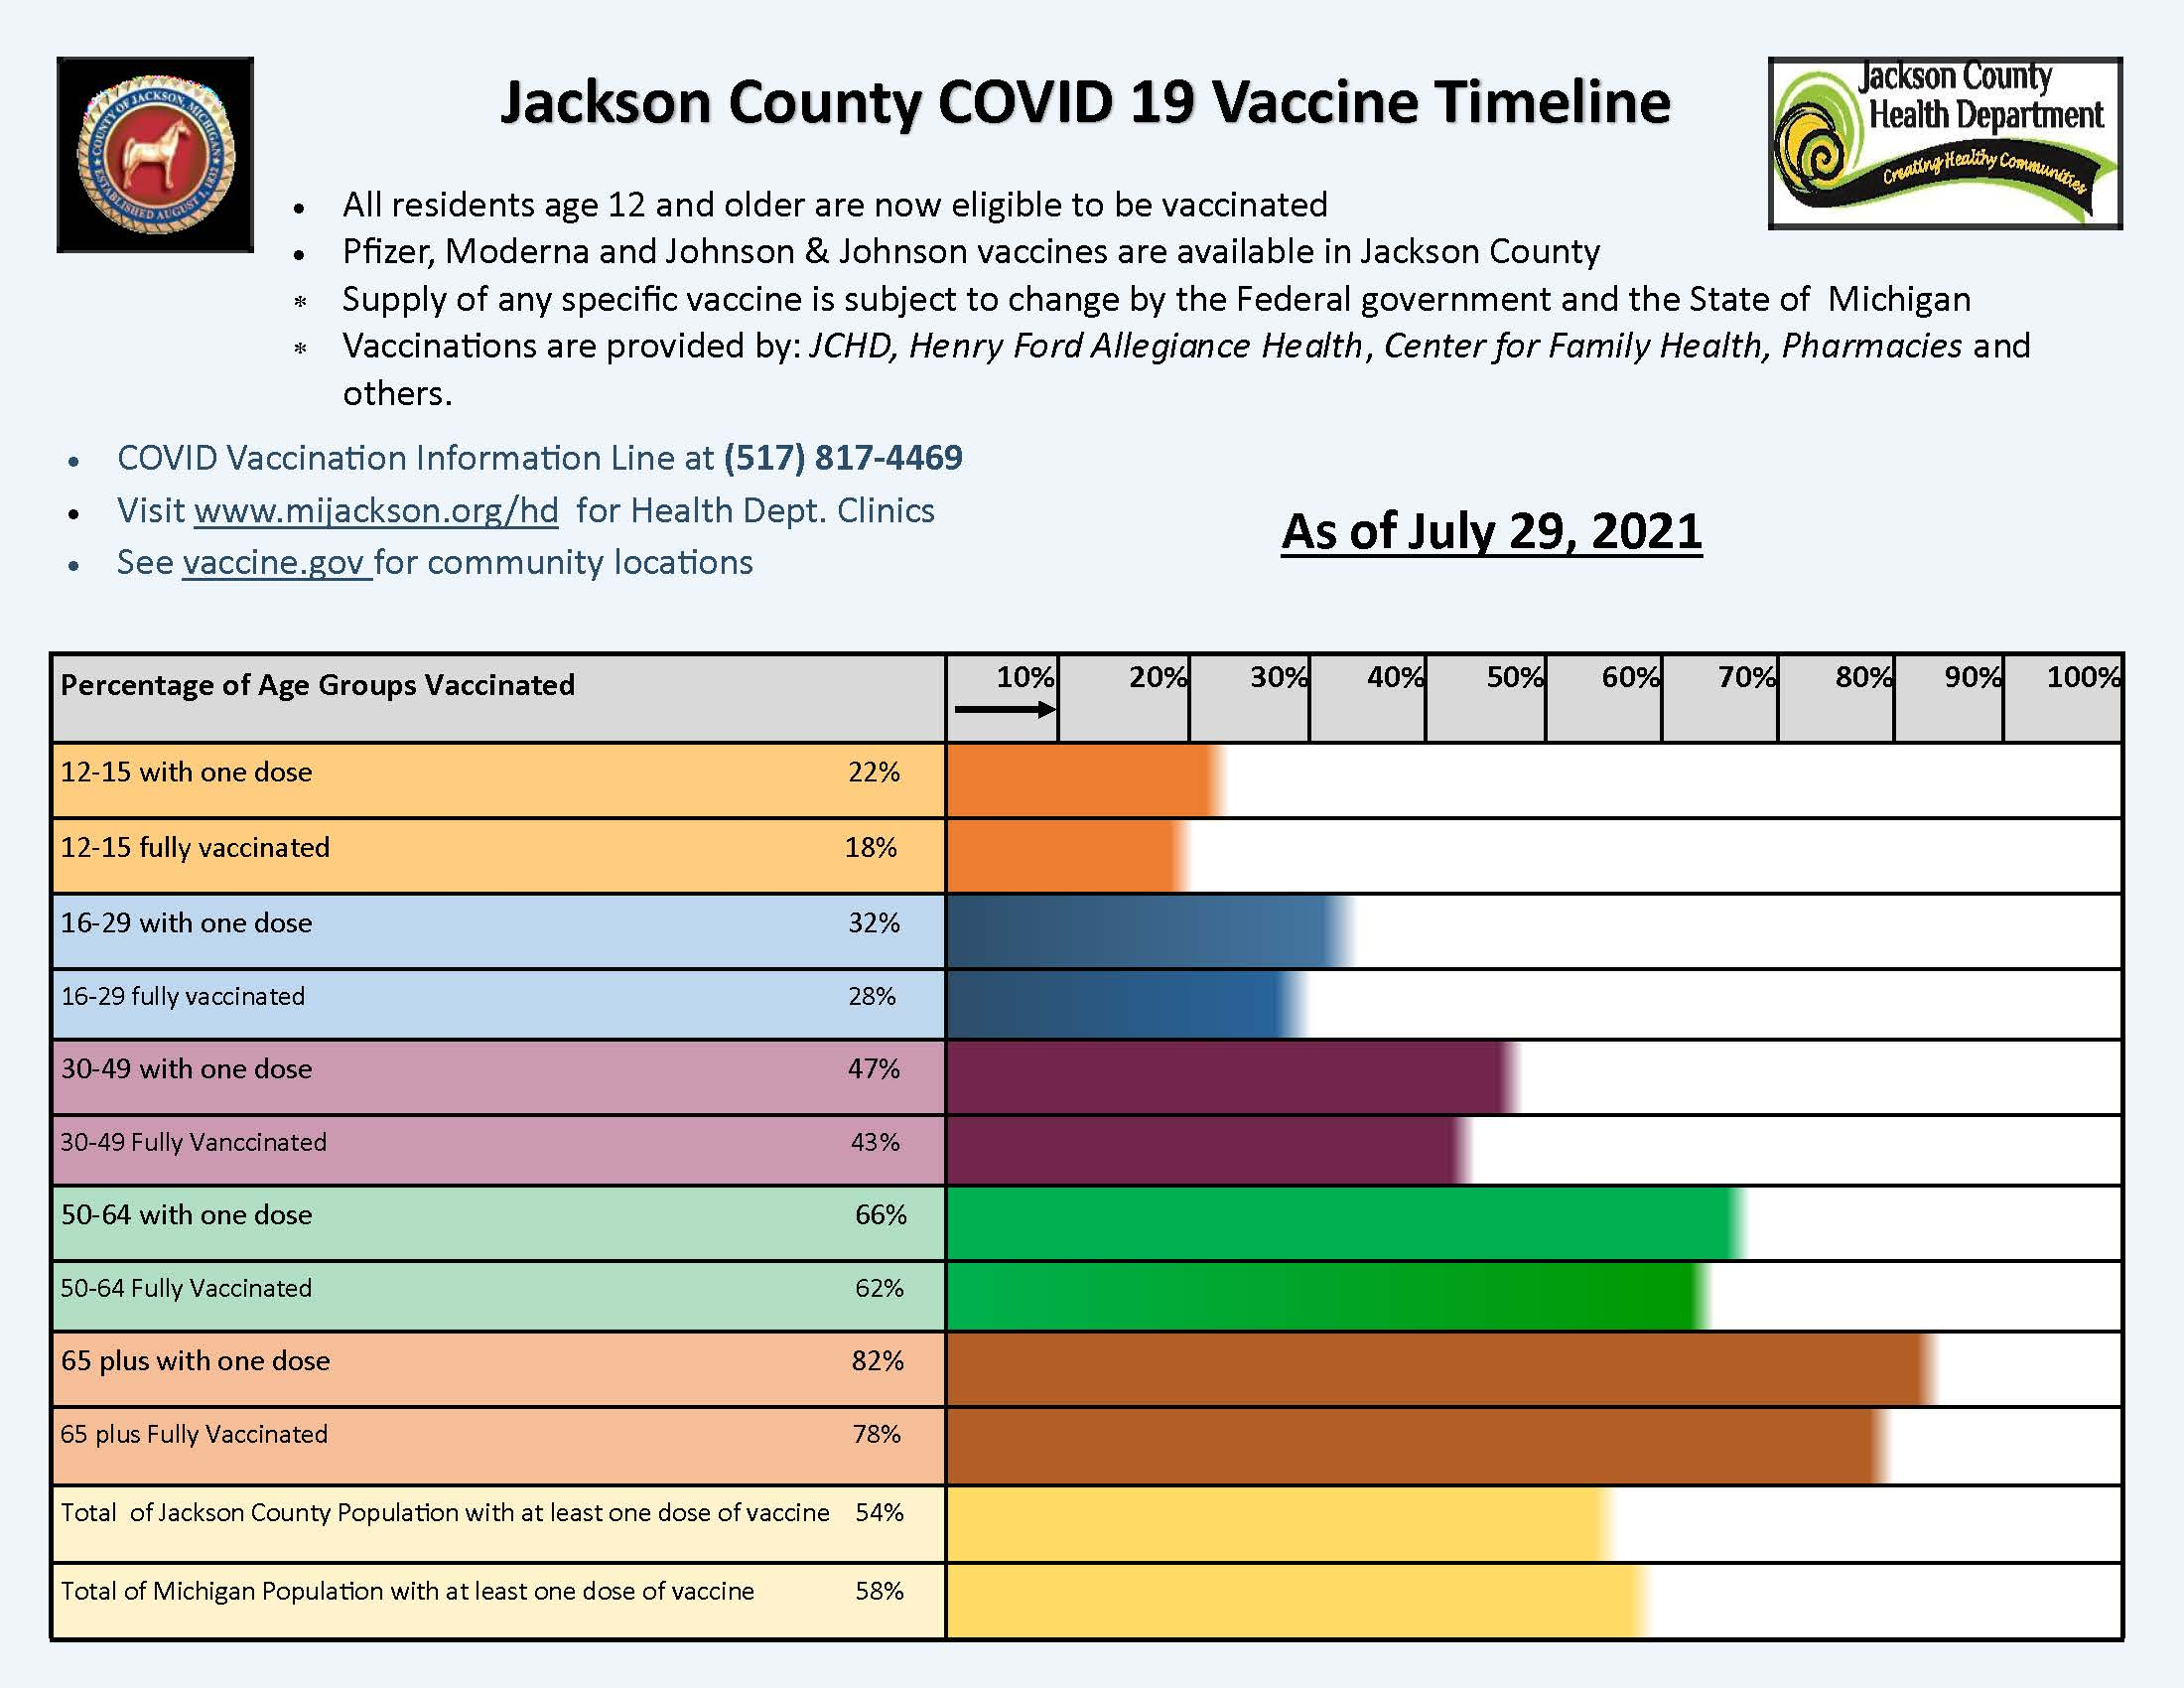 Jackson County Vaccination Timeline Jan 25